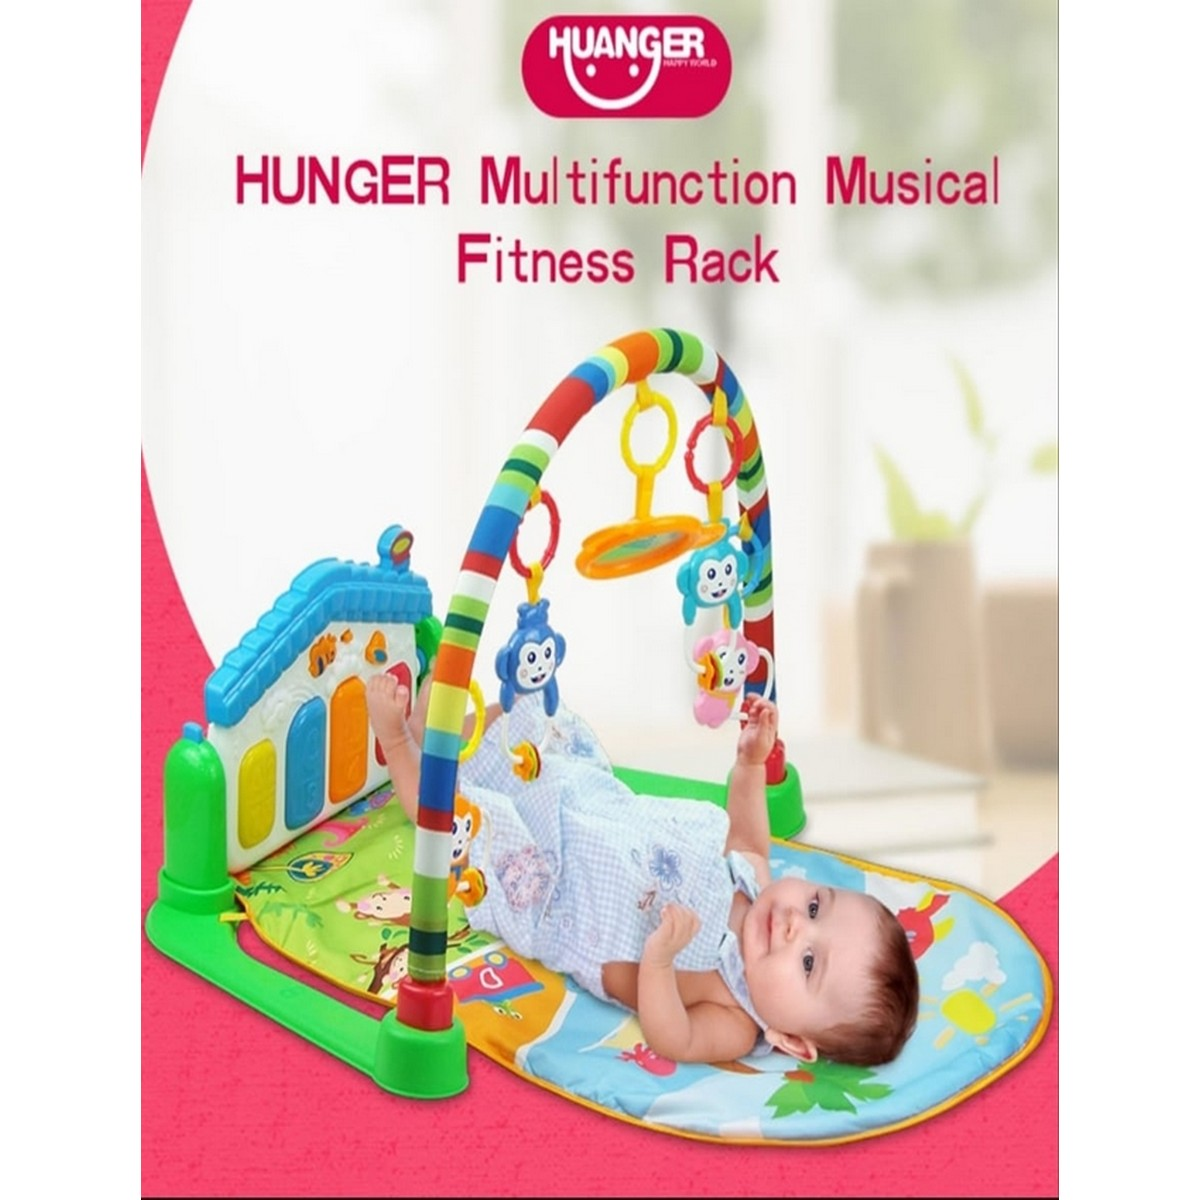 Kick and Play Huanger - 3 in 1 Newborn Baby Play Gym Piano Fitness Rack Mat